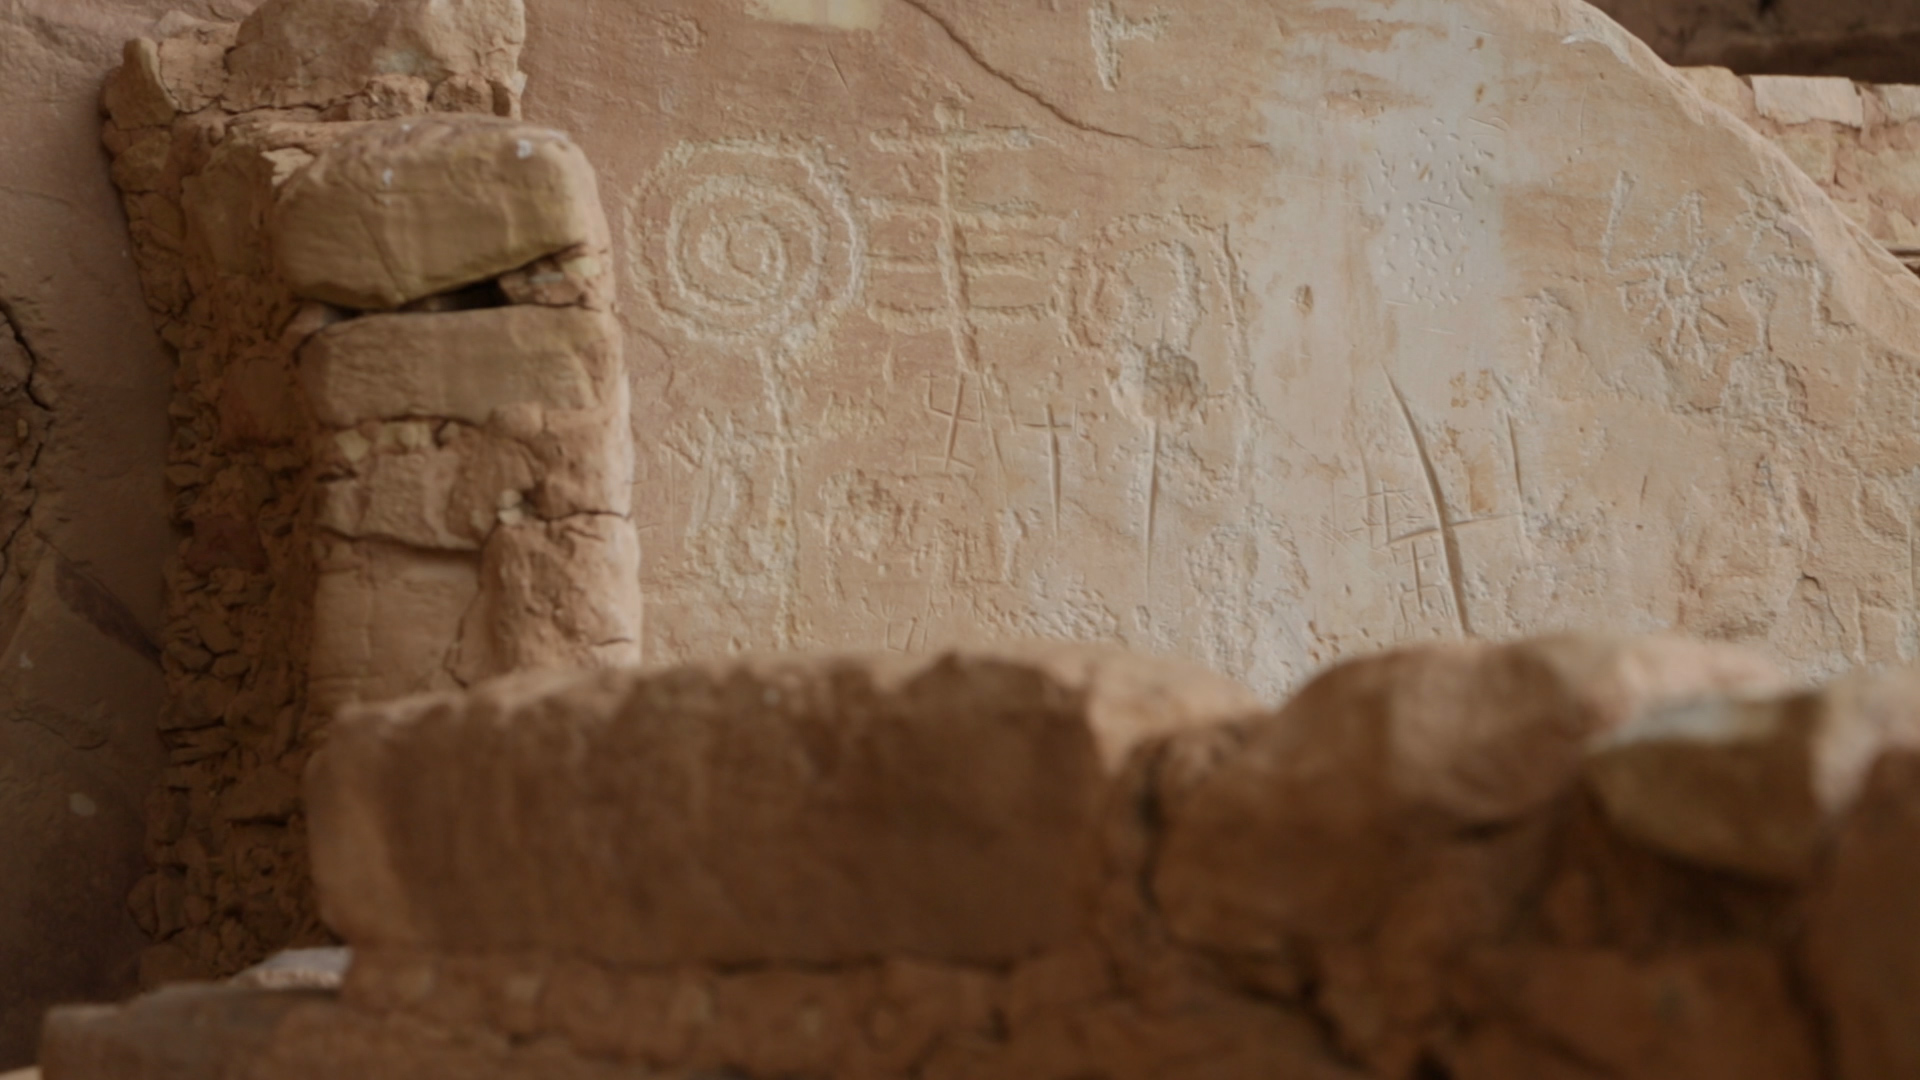 Petroglyphs in Step House